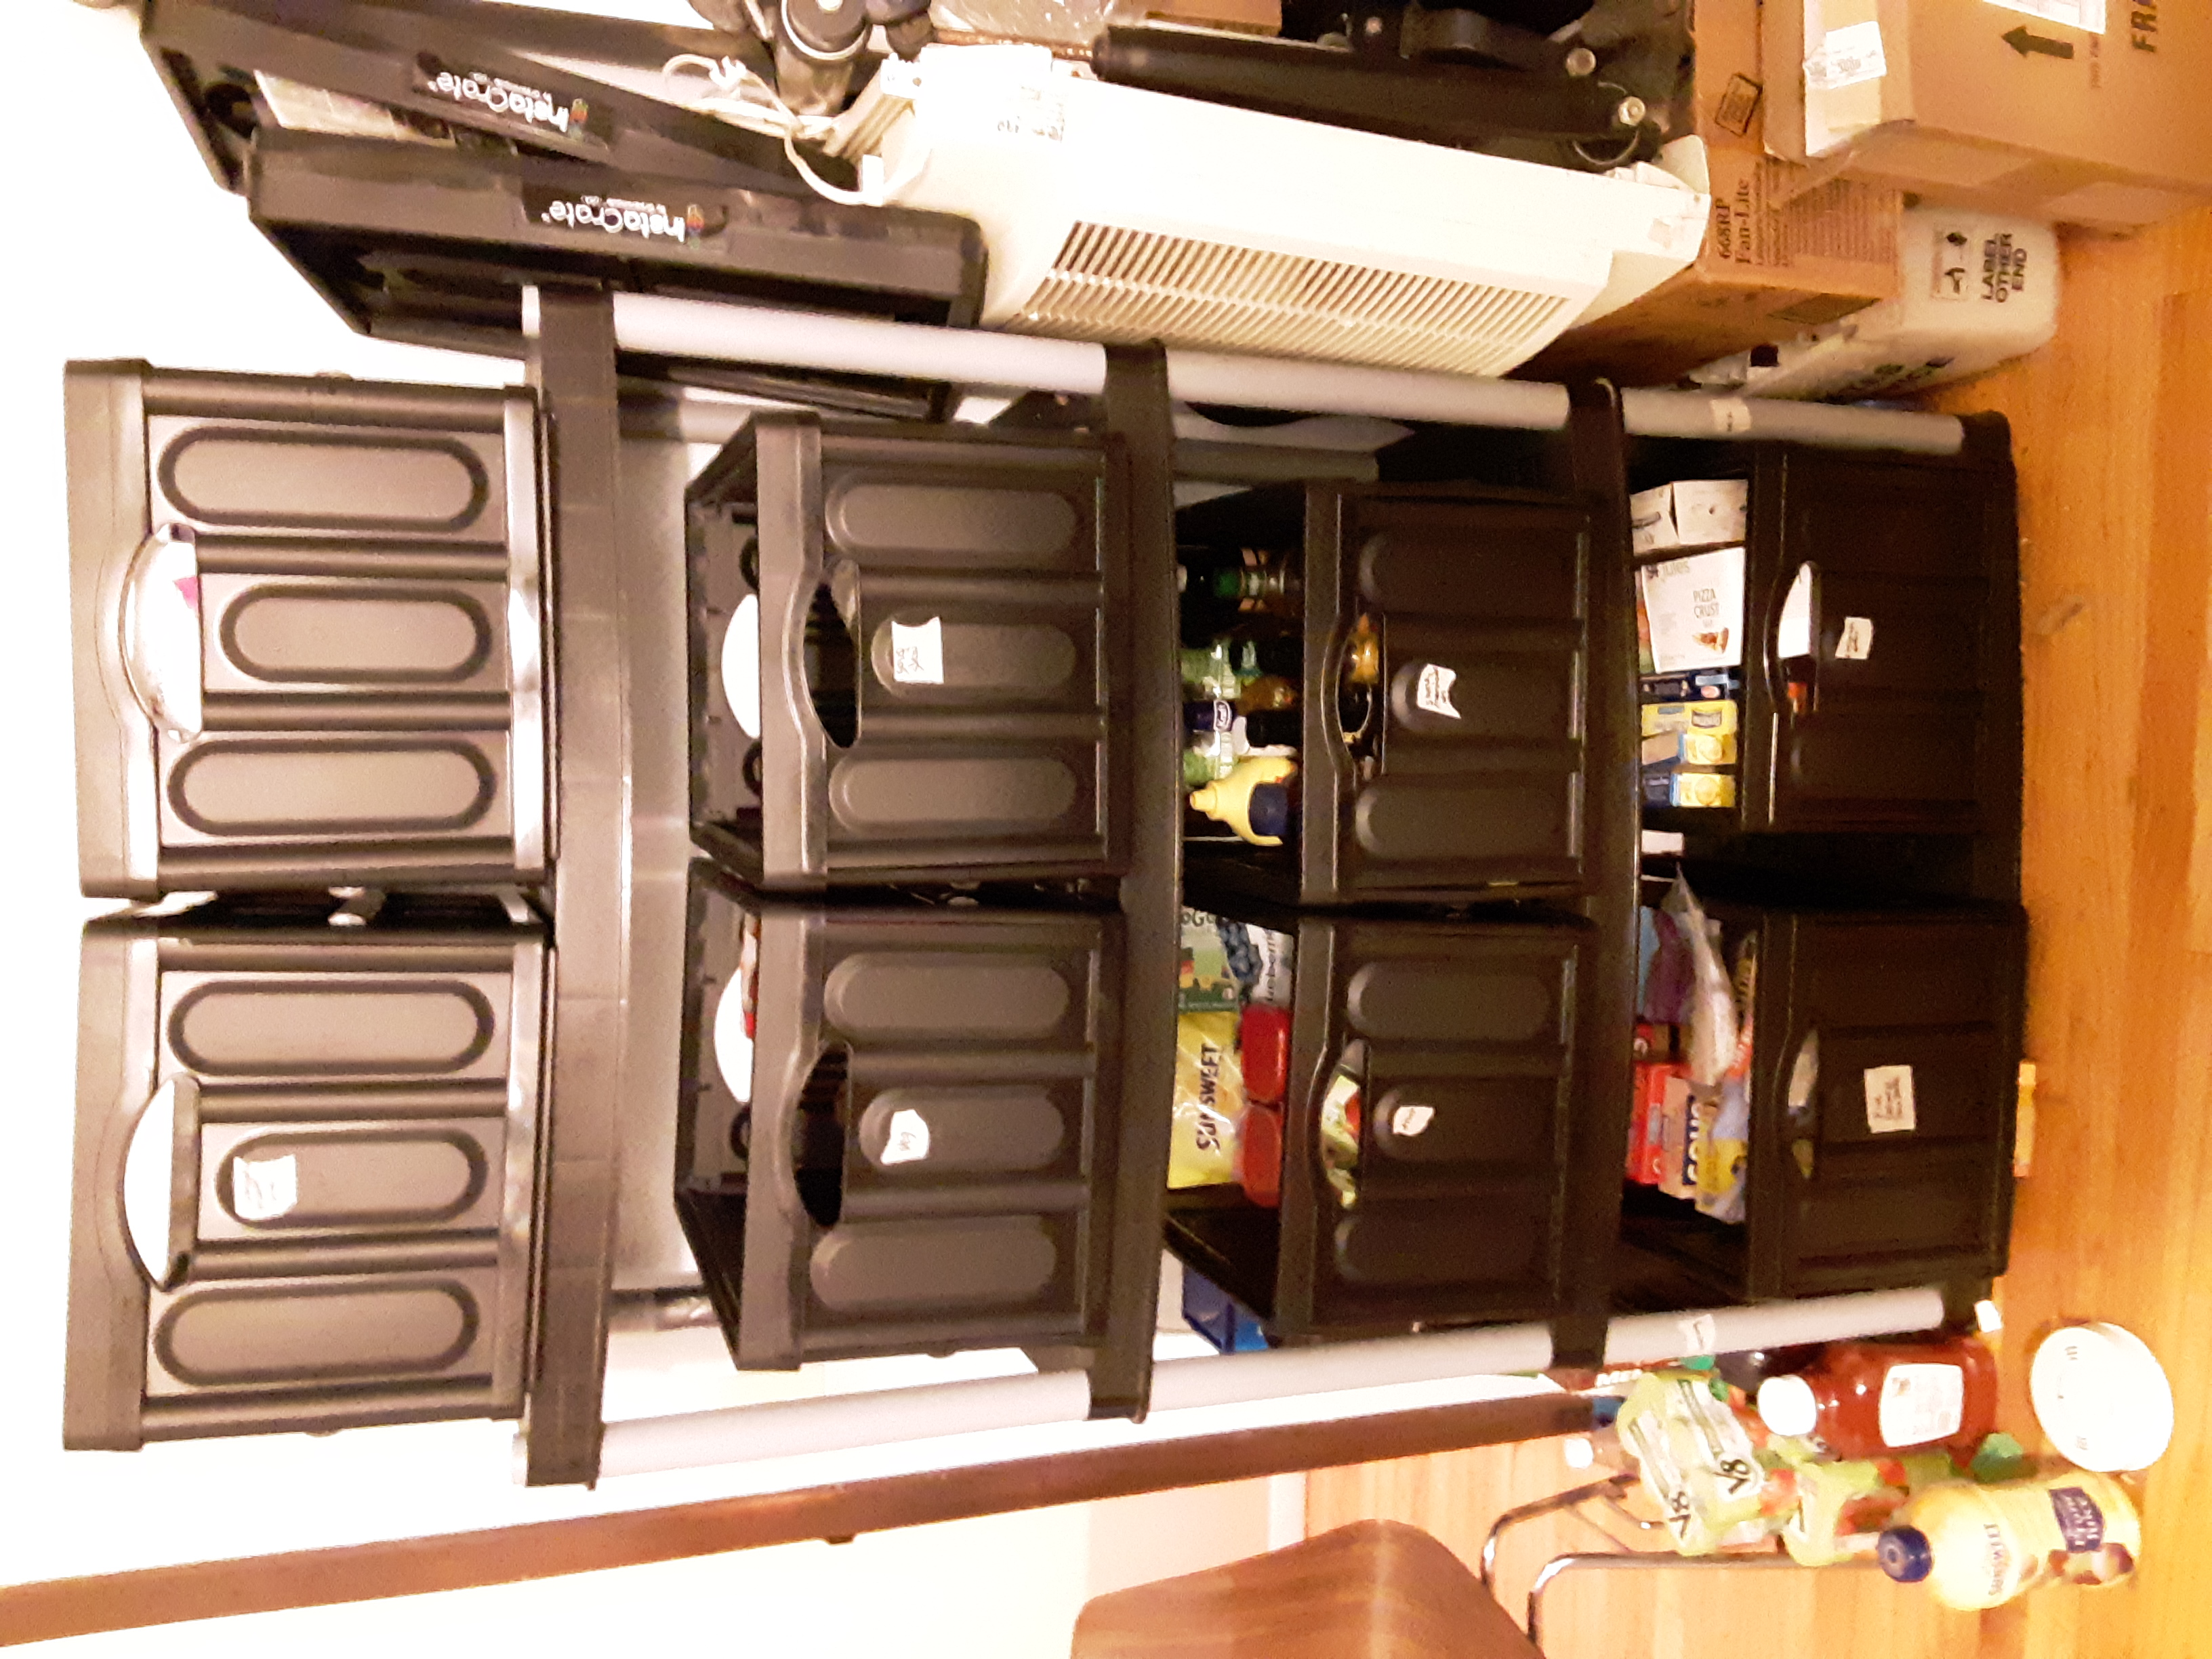 The organized bins, now easier to pull out.